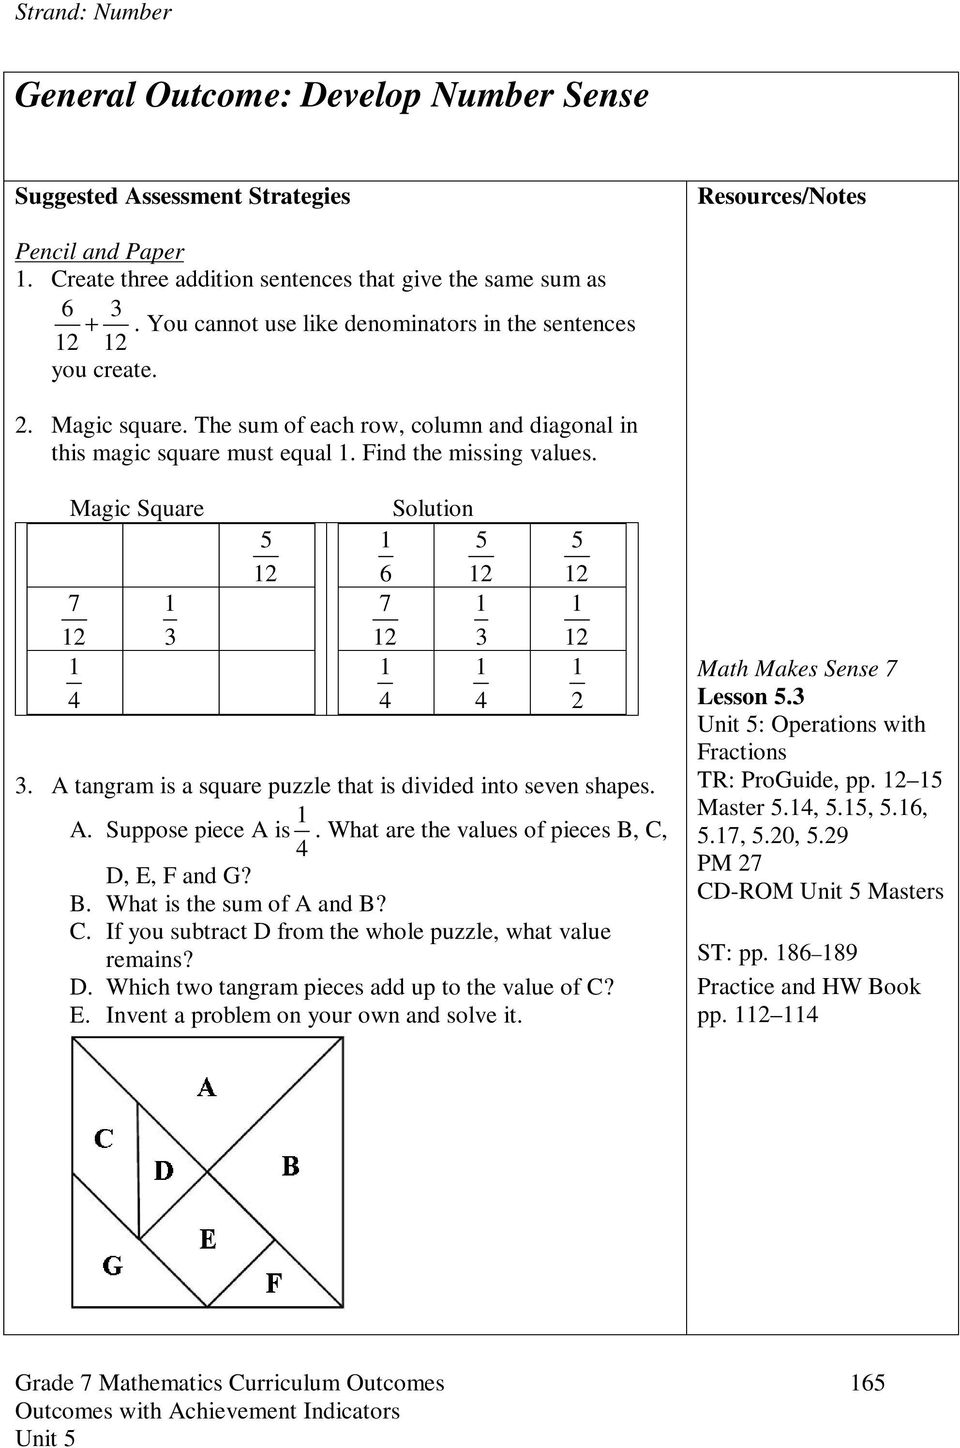 Grade 7 Mathematics  Unit 5  Operations with Fractions  Estimated